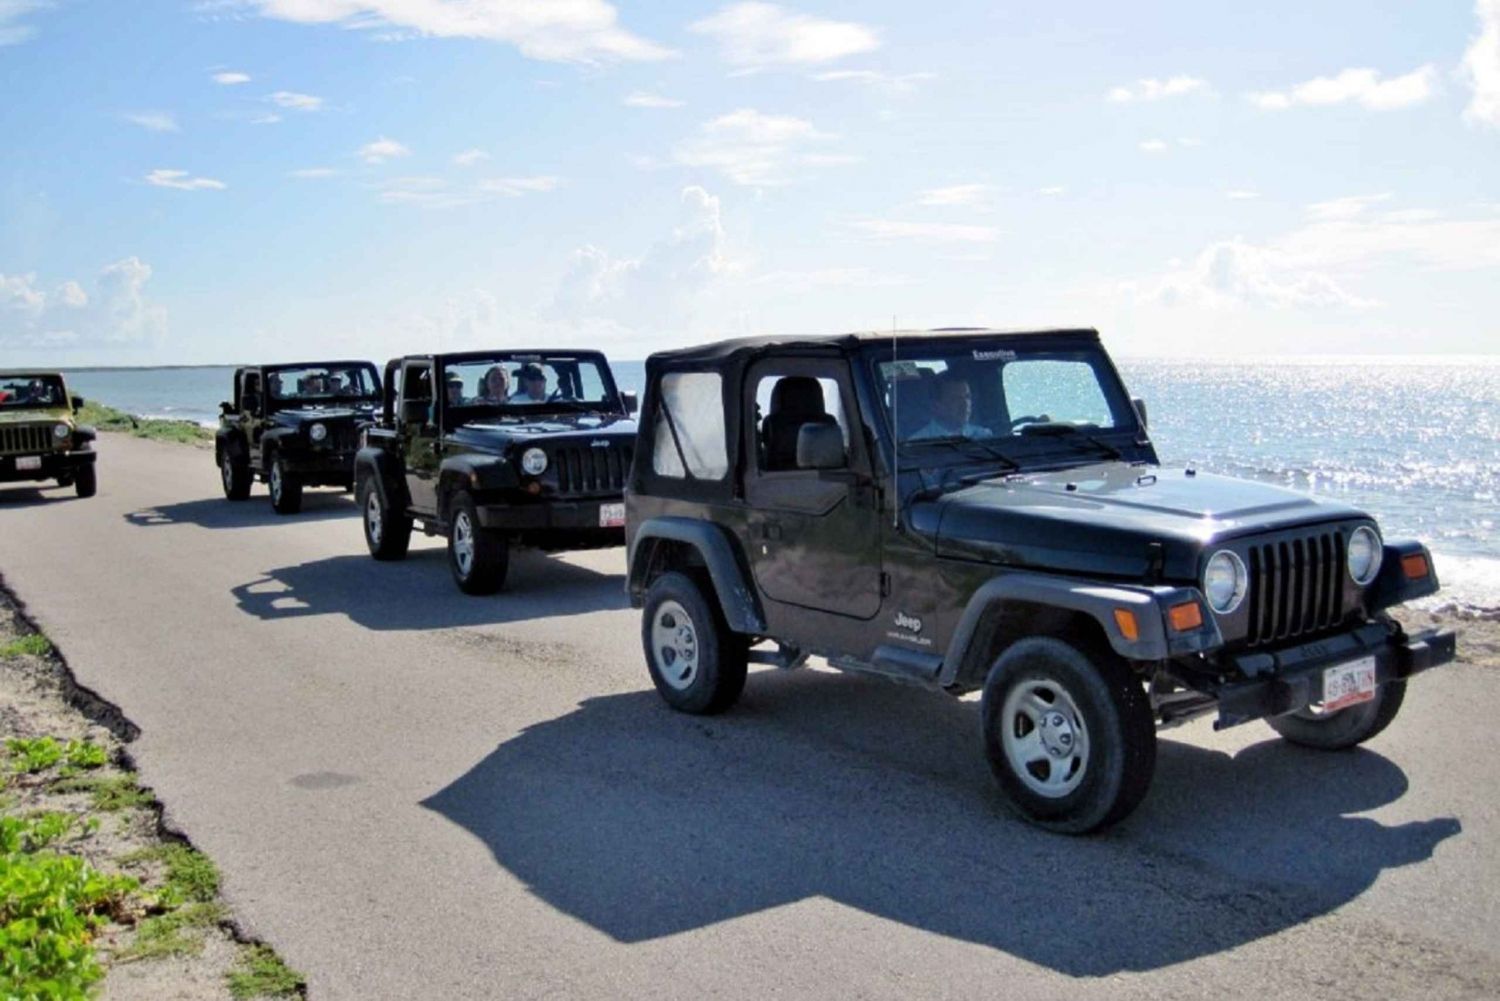 Cozumel: Adventure by Jeep with Snorkeling and Dolphins